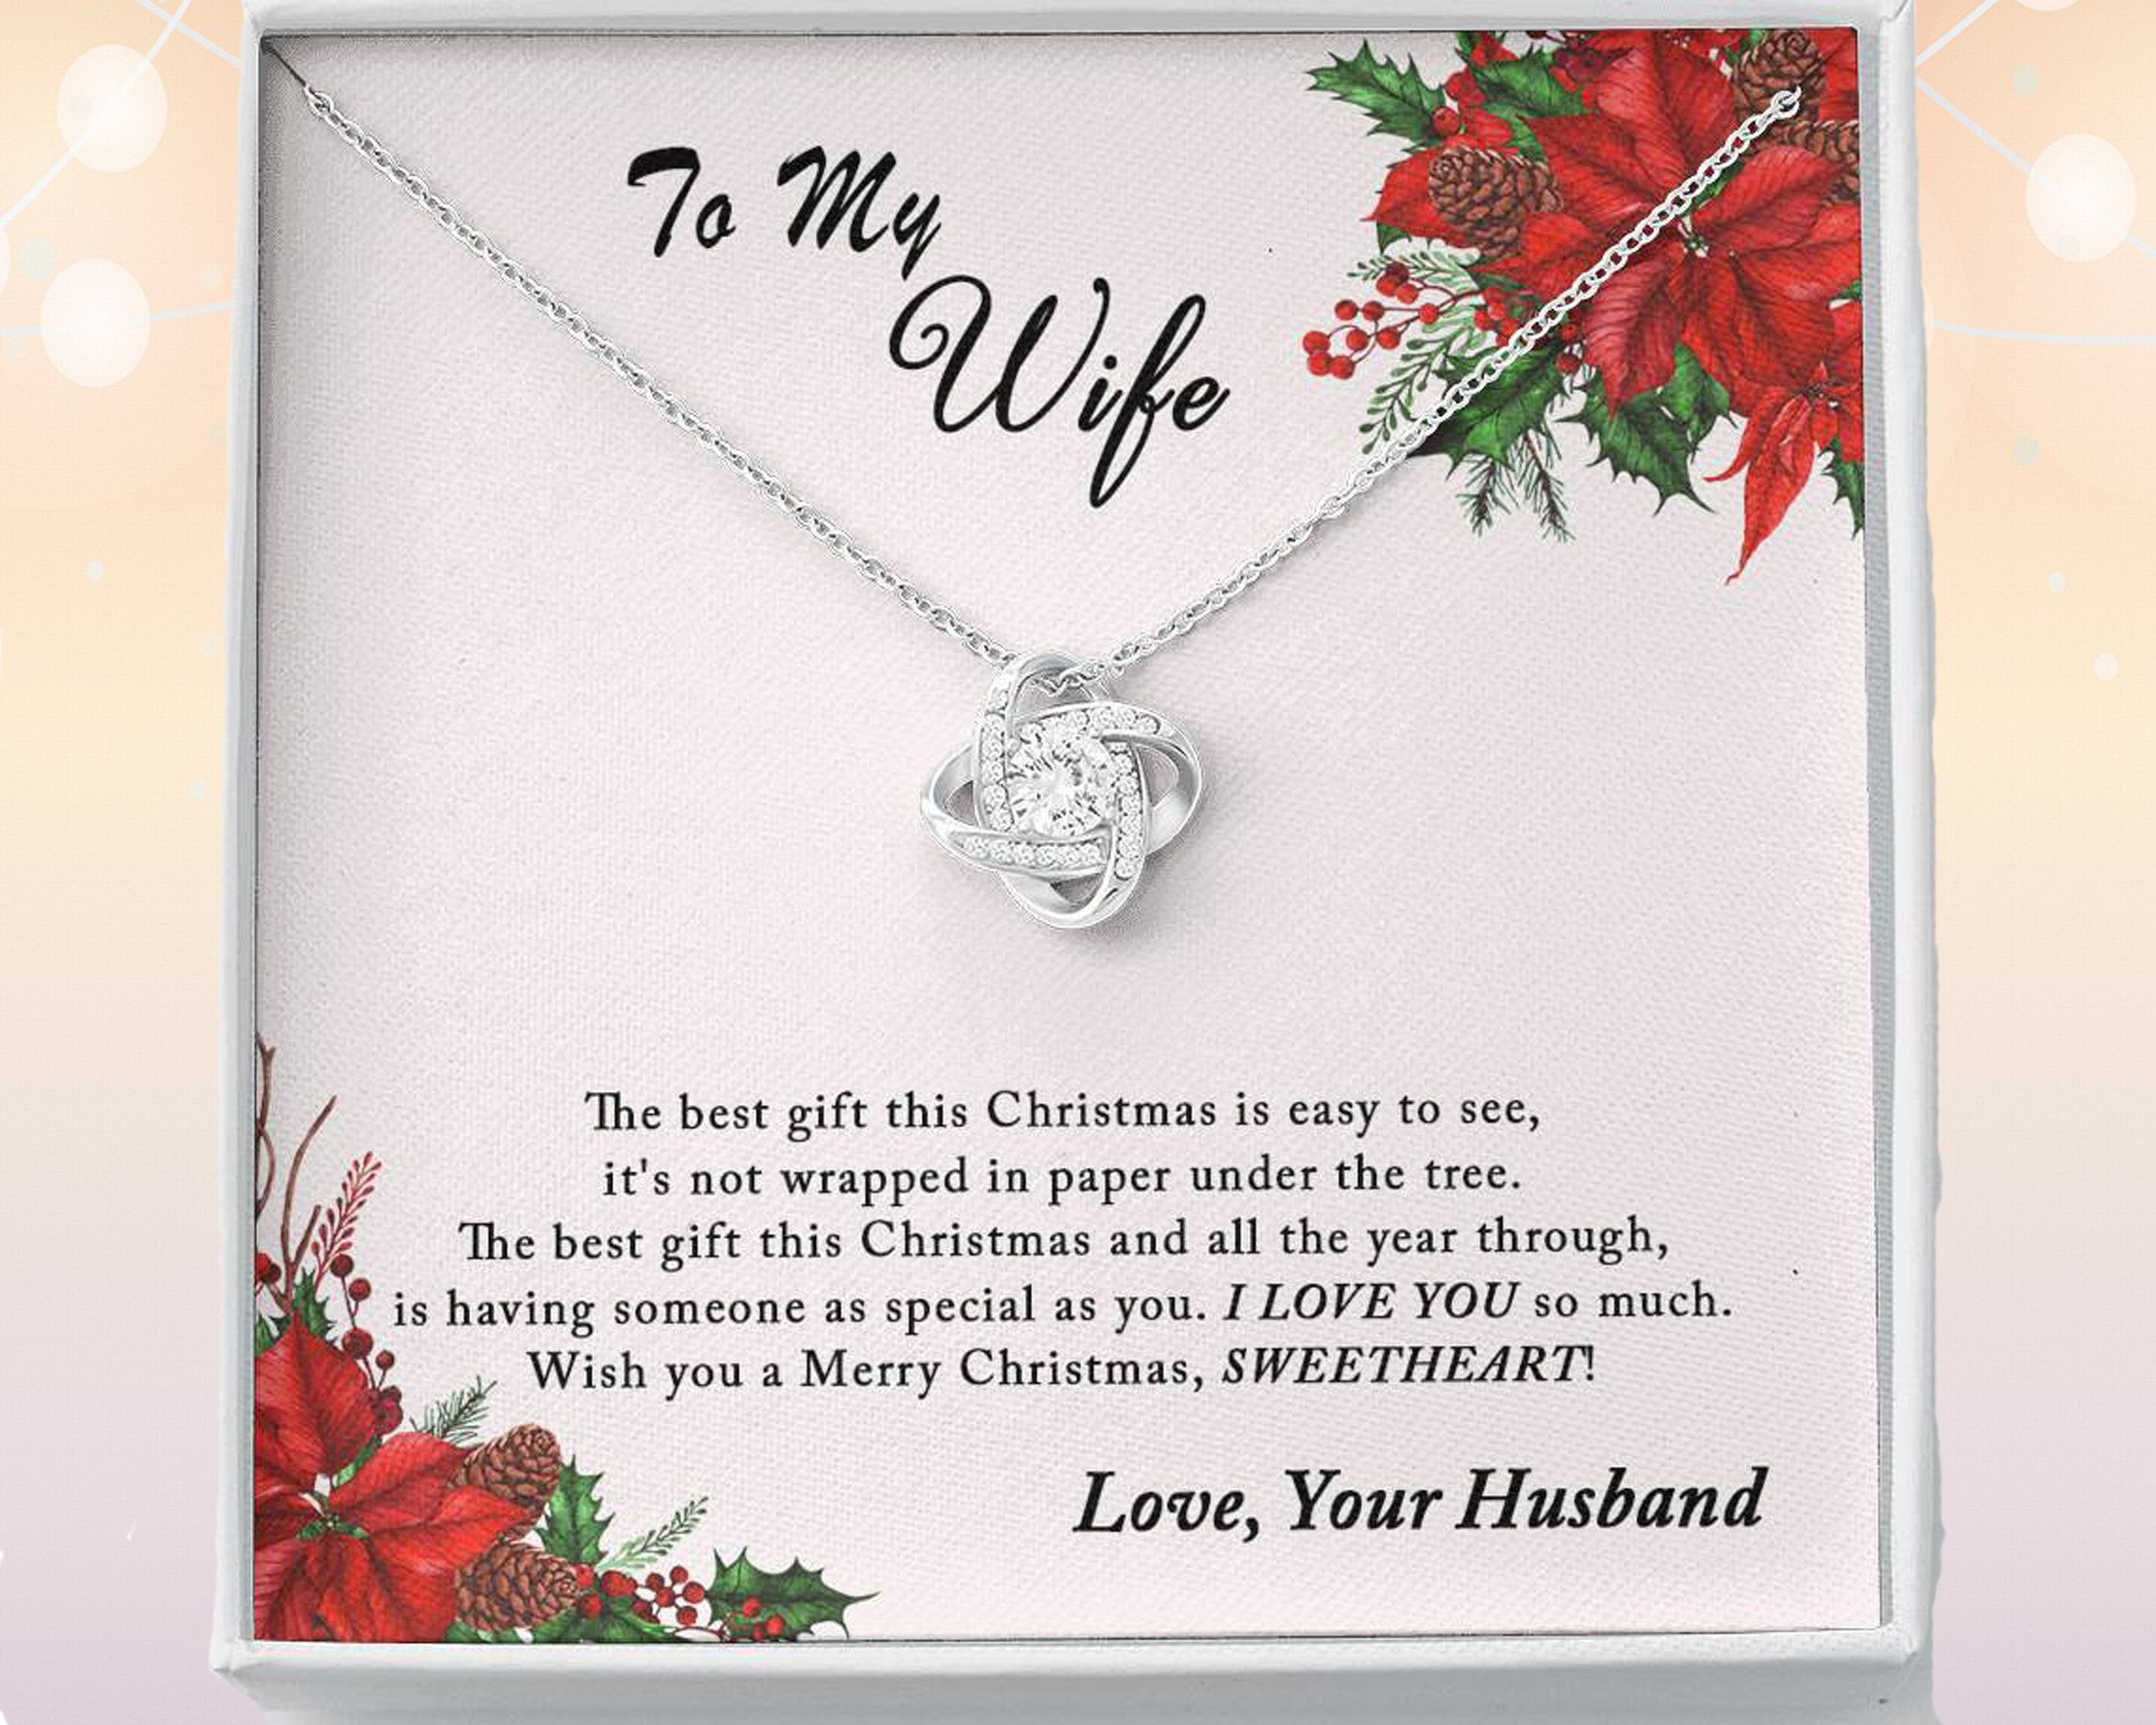 Christmas Gift For Wife From Husband First Married Christmas Etsy In 2021 Christmas Gifts For Wife Best Gift For Wife Gifts For Wife